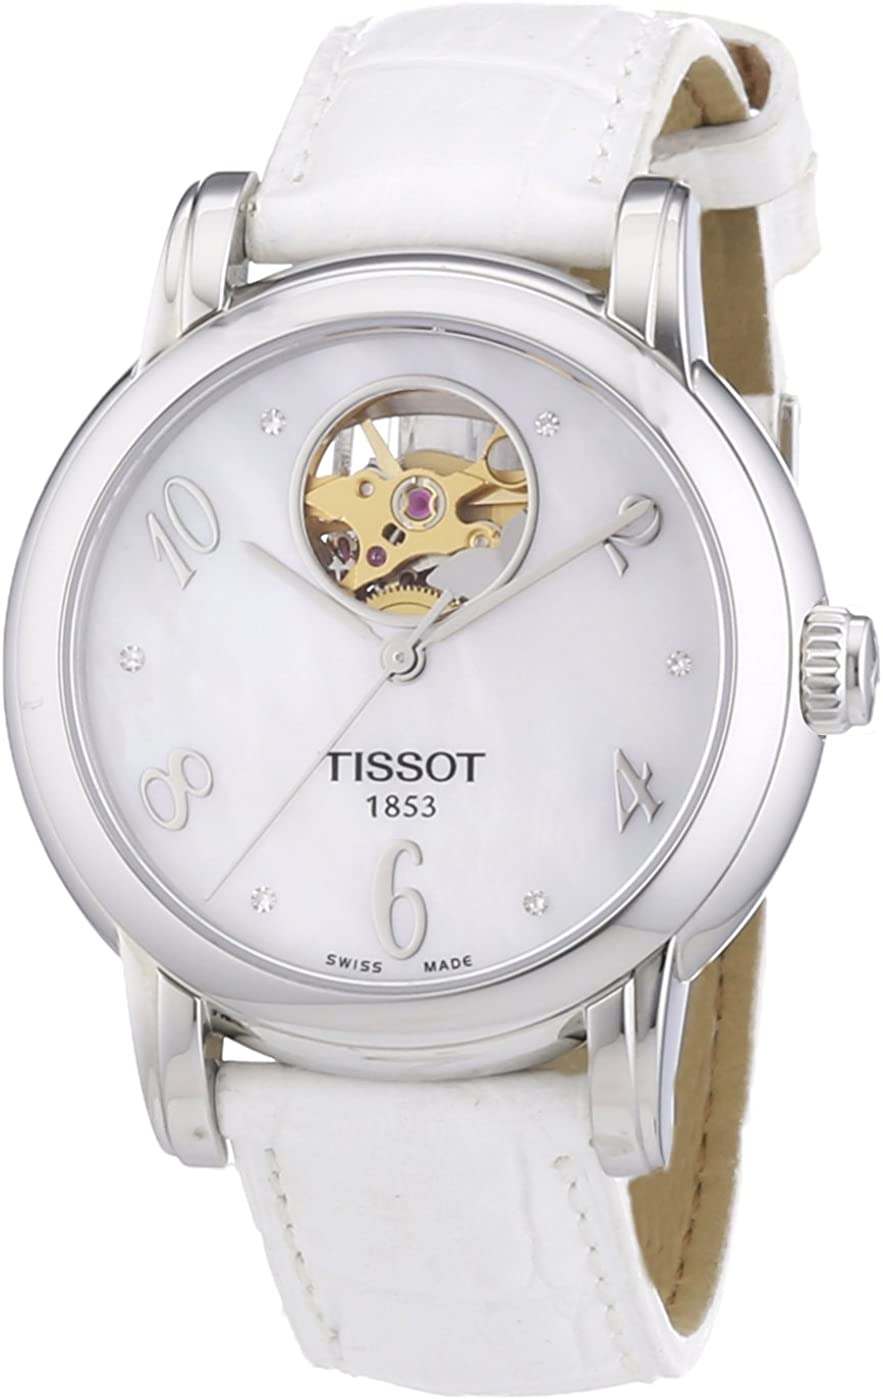 Tissot Women's T0502071611600 Heart Mother-Of-Pearl Ranking TOP12 Op Max 84% OFF Automatic